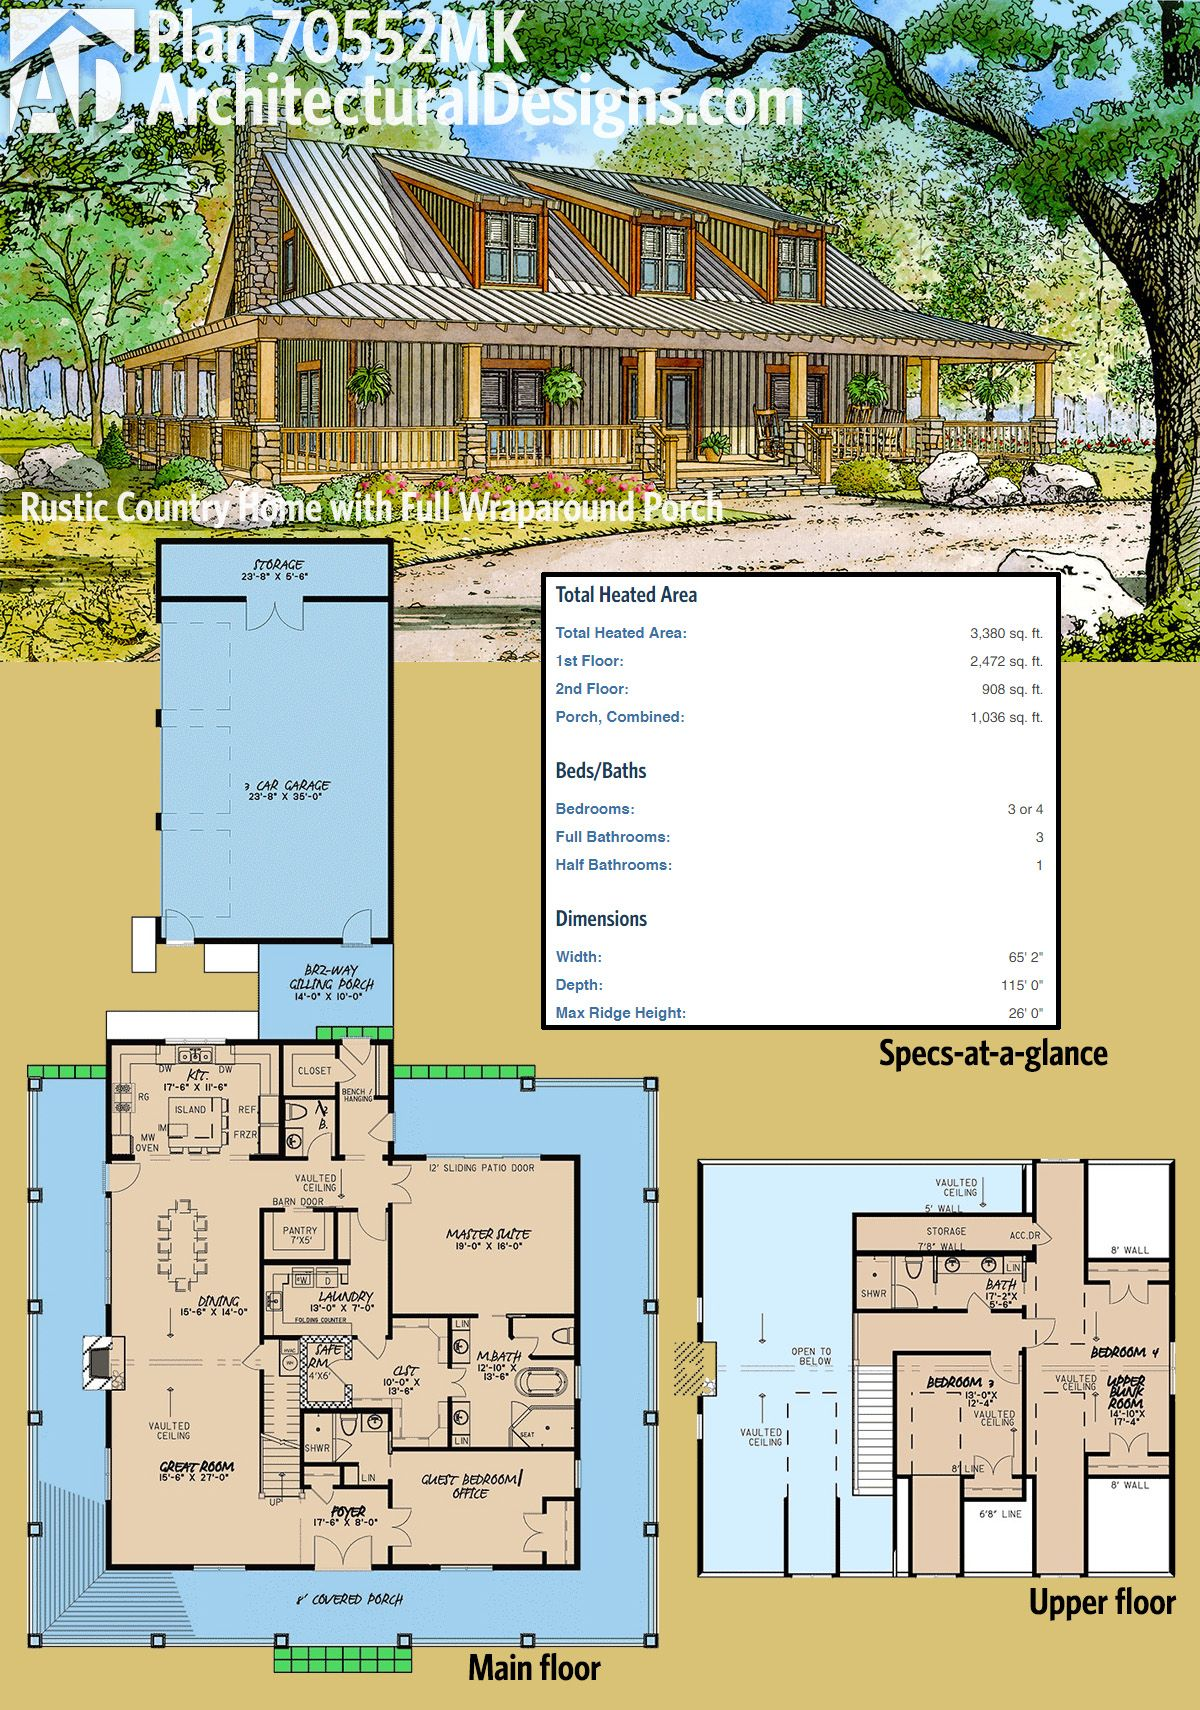 plan 70552mk rustic country home with wrap around porch home design acadian plans country house wrap around porch